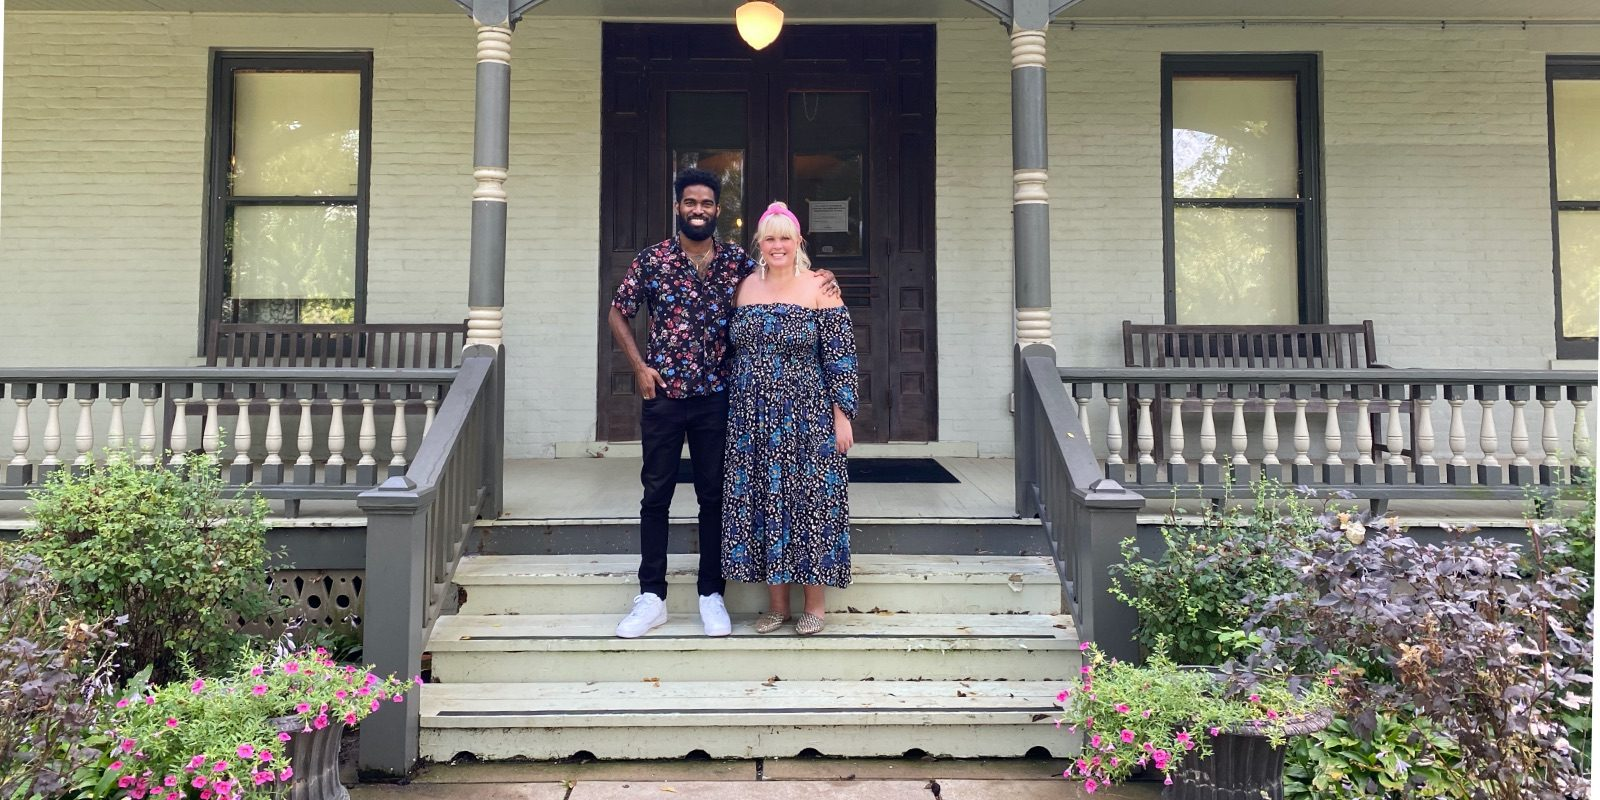 Influencer Jon Marzette and his girlfriend, Ann, pose on the porch of the Bingham-Waggoner Estate in Independence, MO